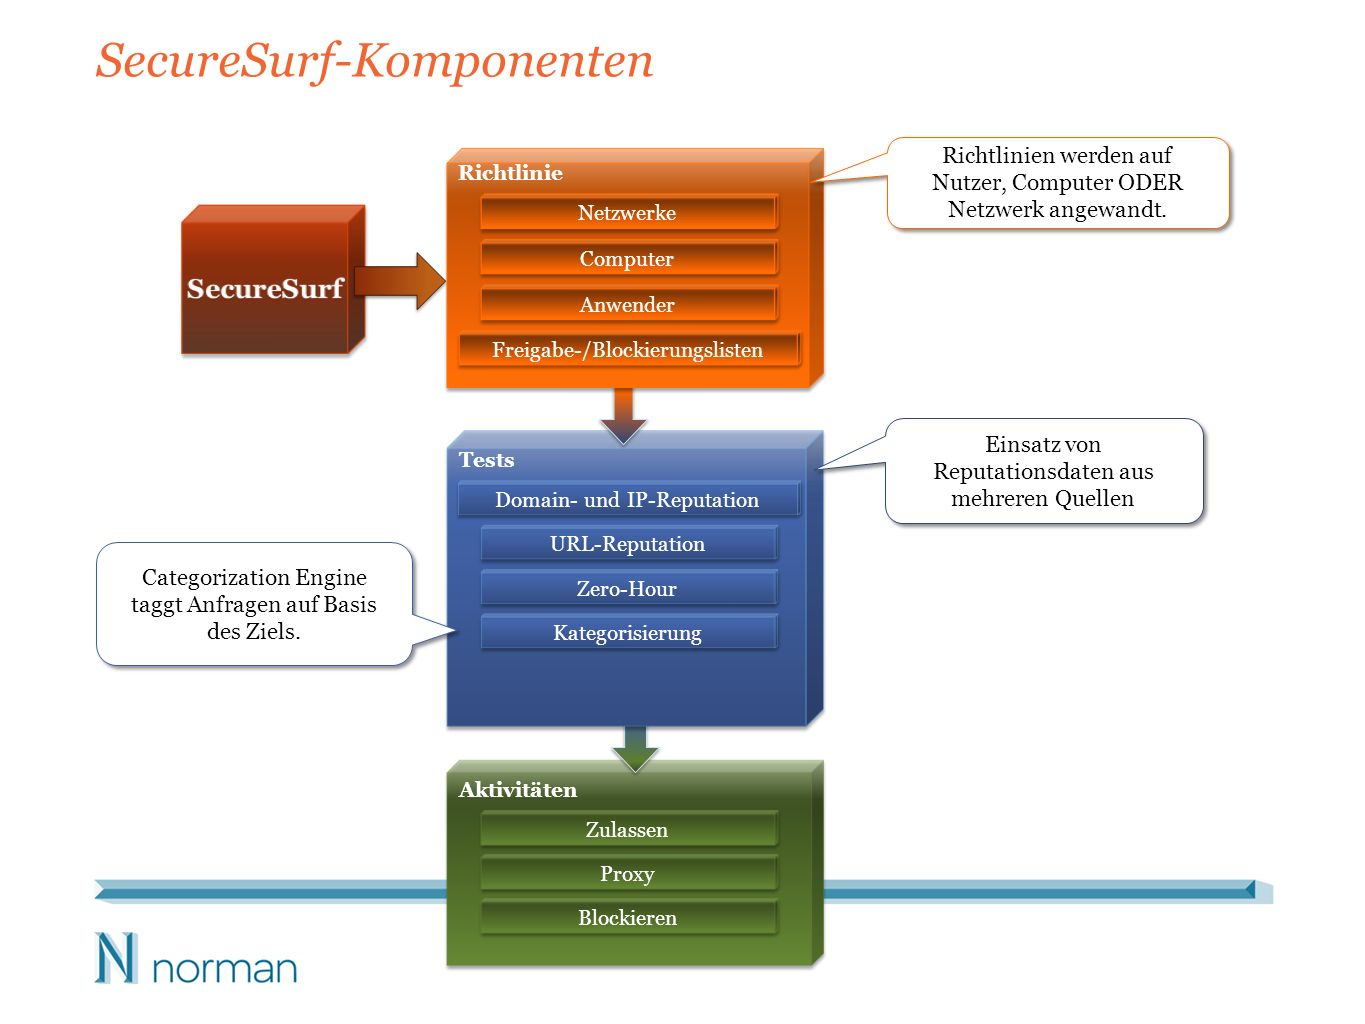 SecureSurf-Komponenten